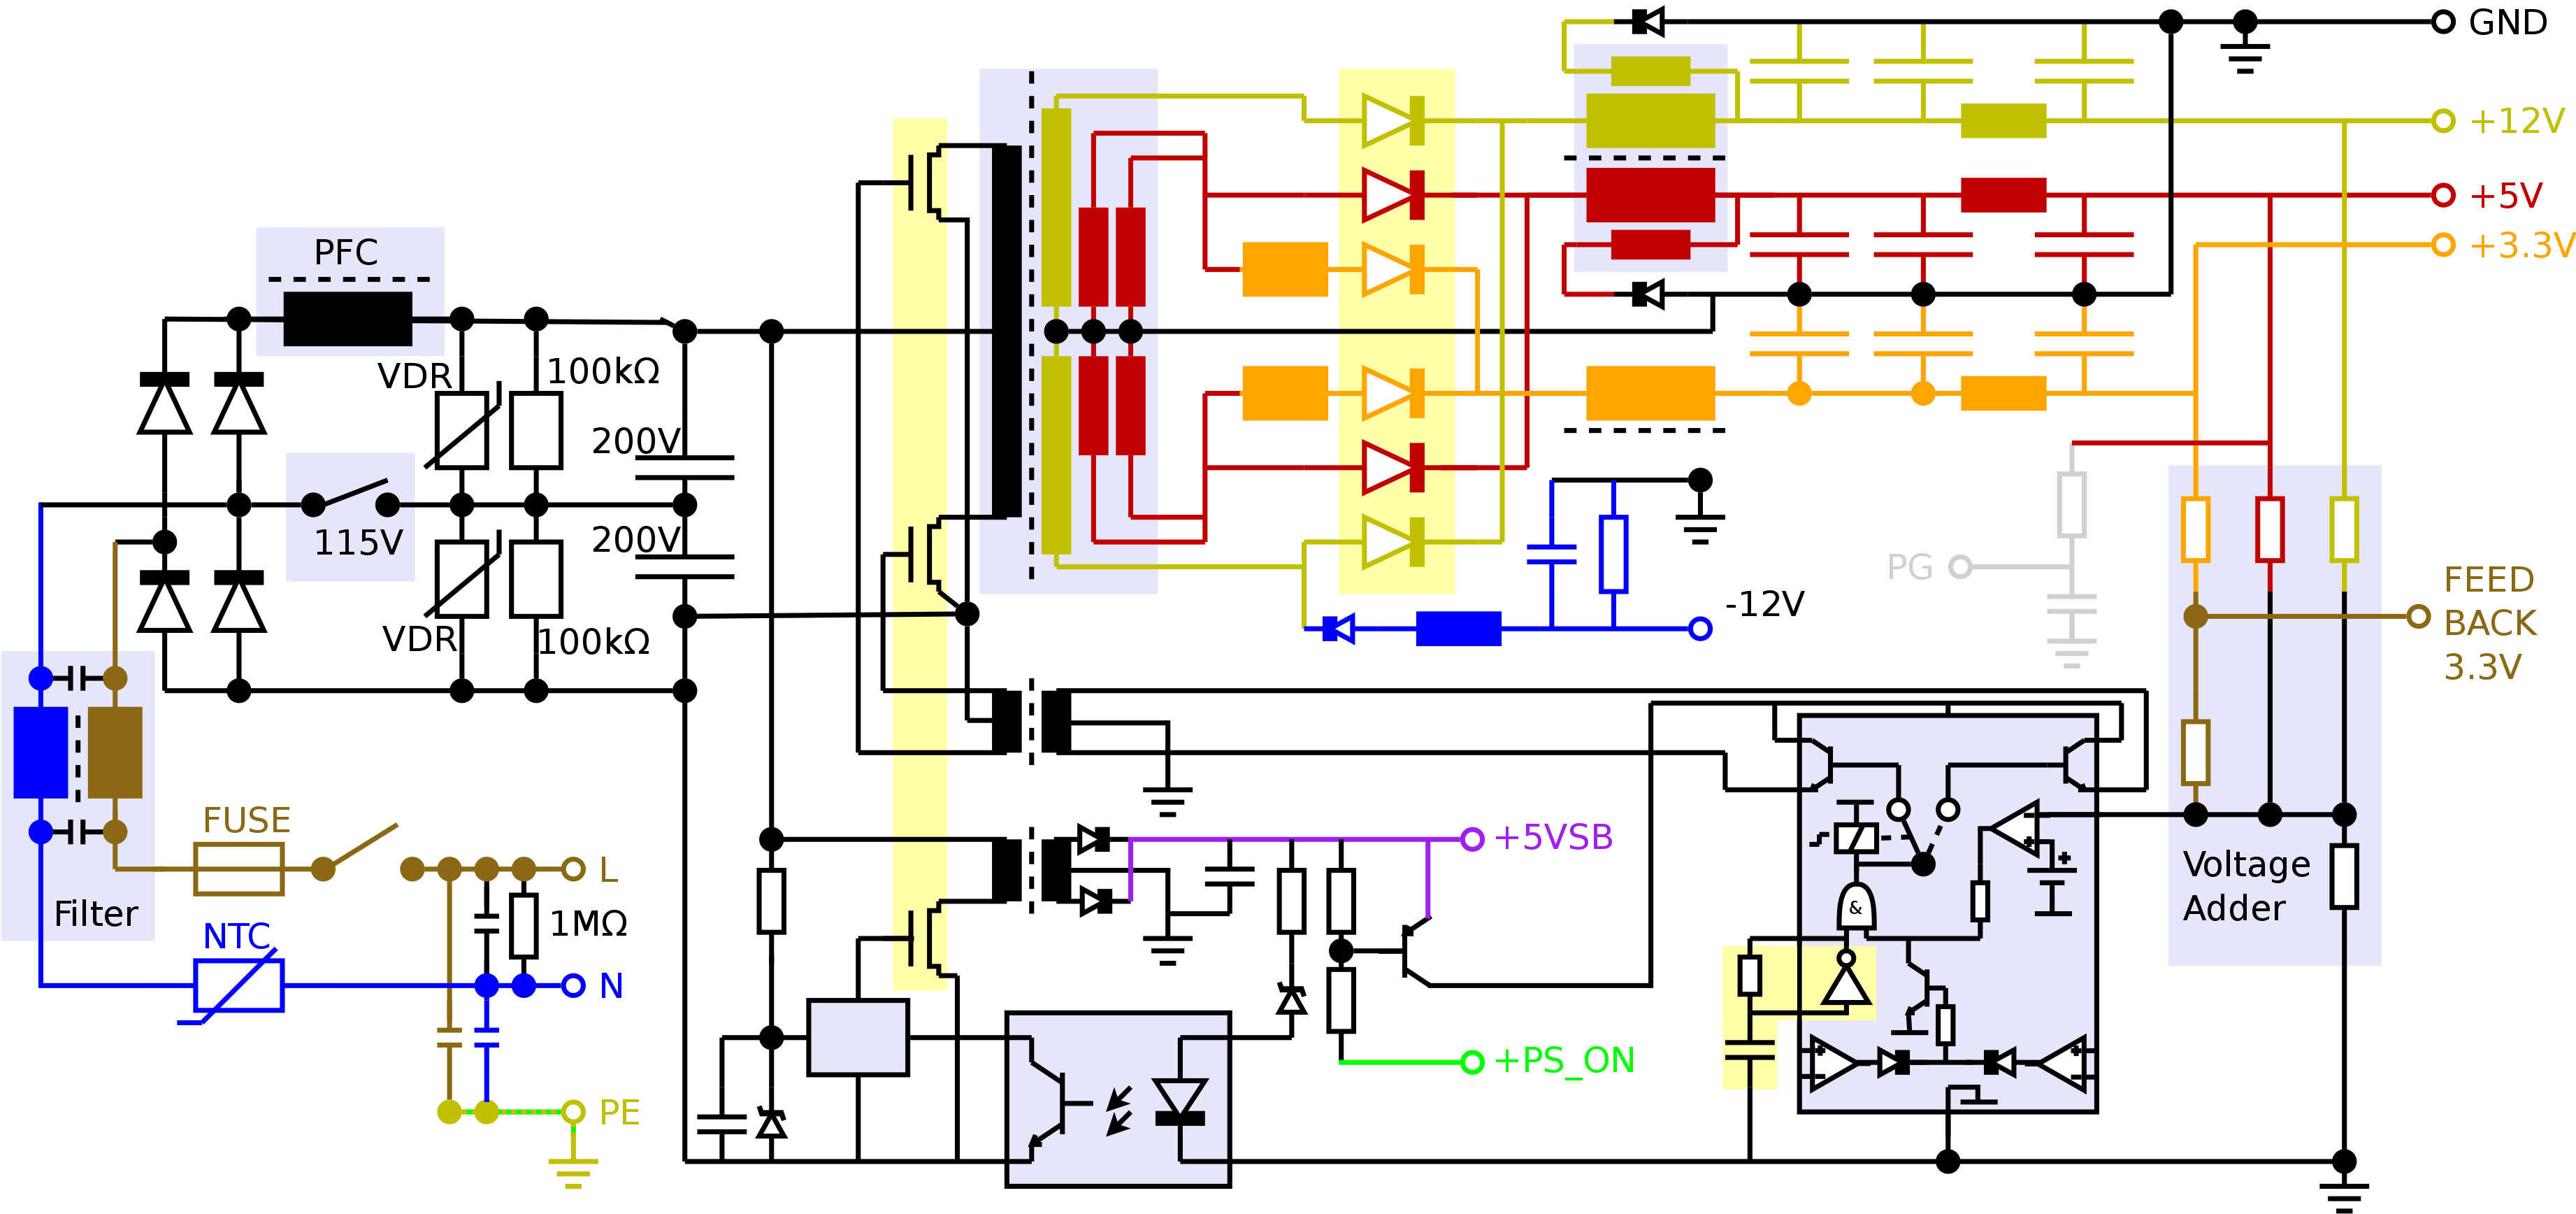 wiring diagram pc power supply for computer the adorable with at [ 3685 x 1736 Pixel ]